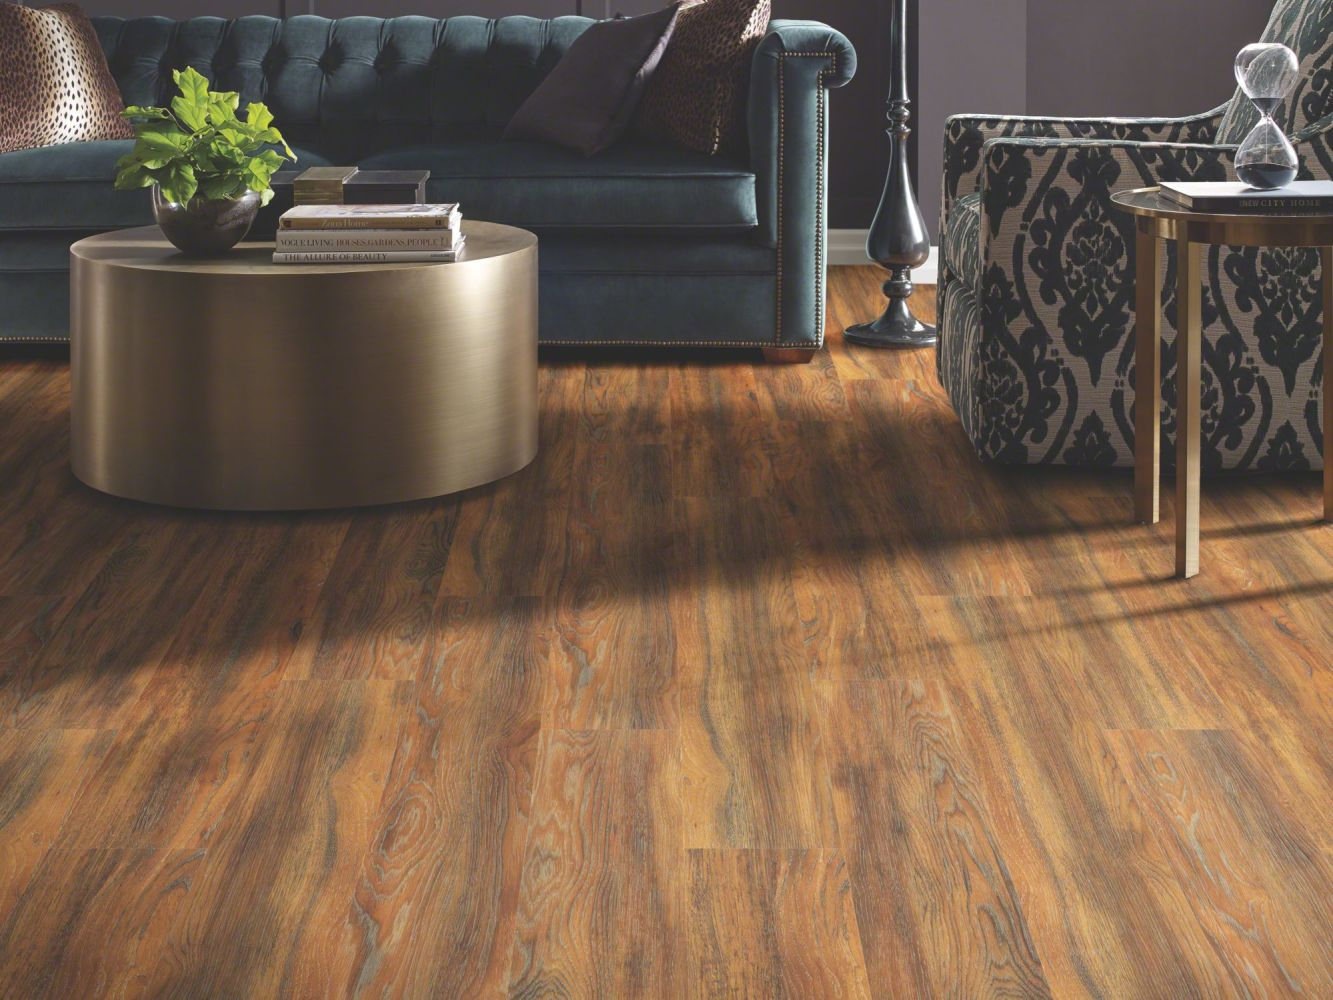 Shaw Floors Resilient Residential Endura Plus Auburn Oak 00698_0736V